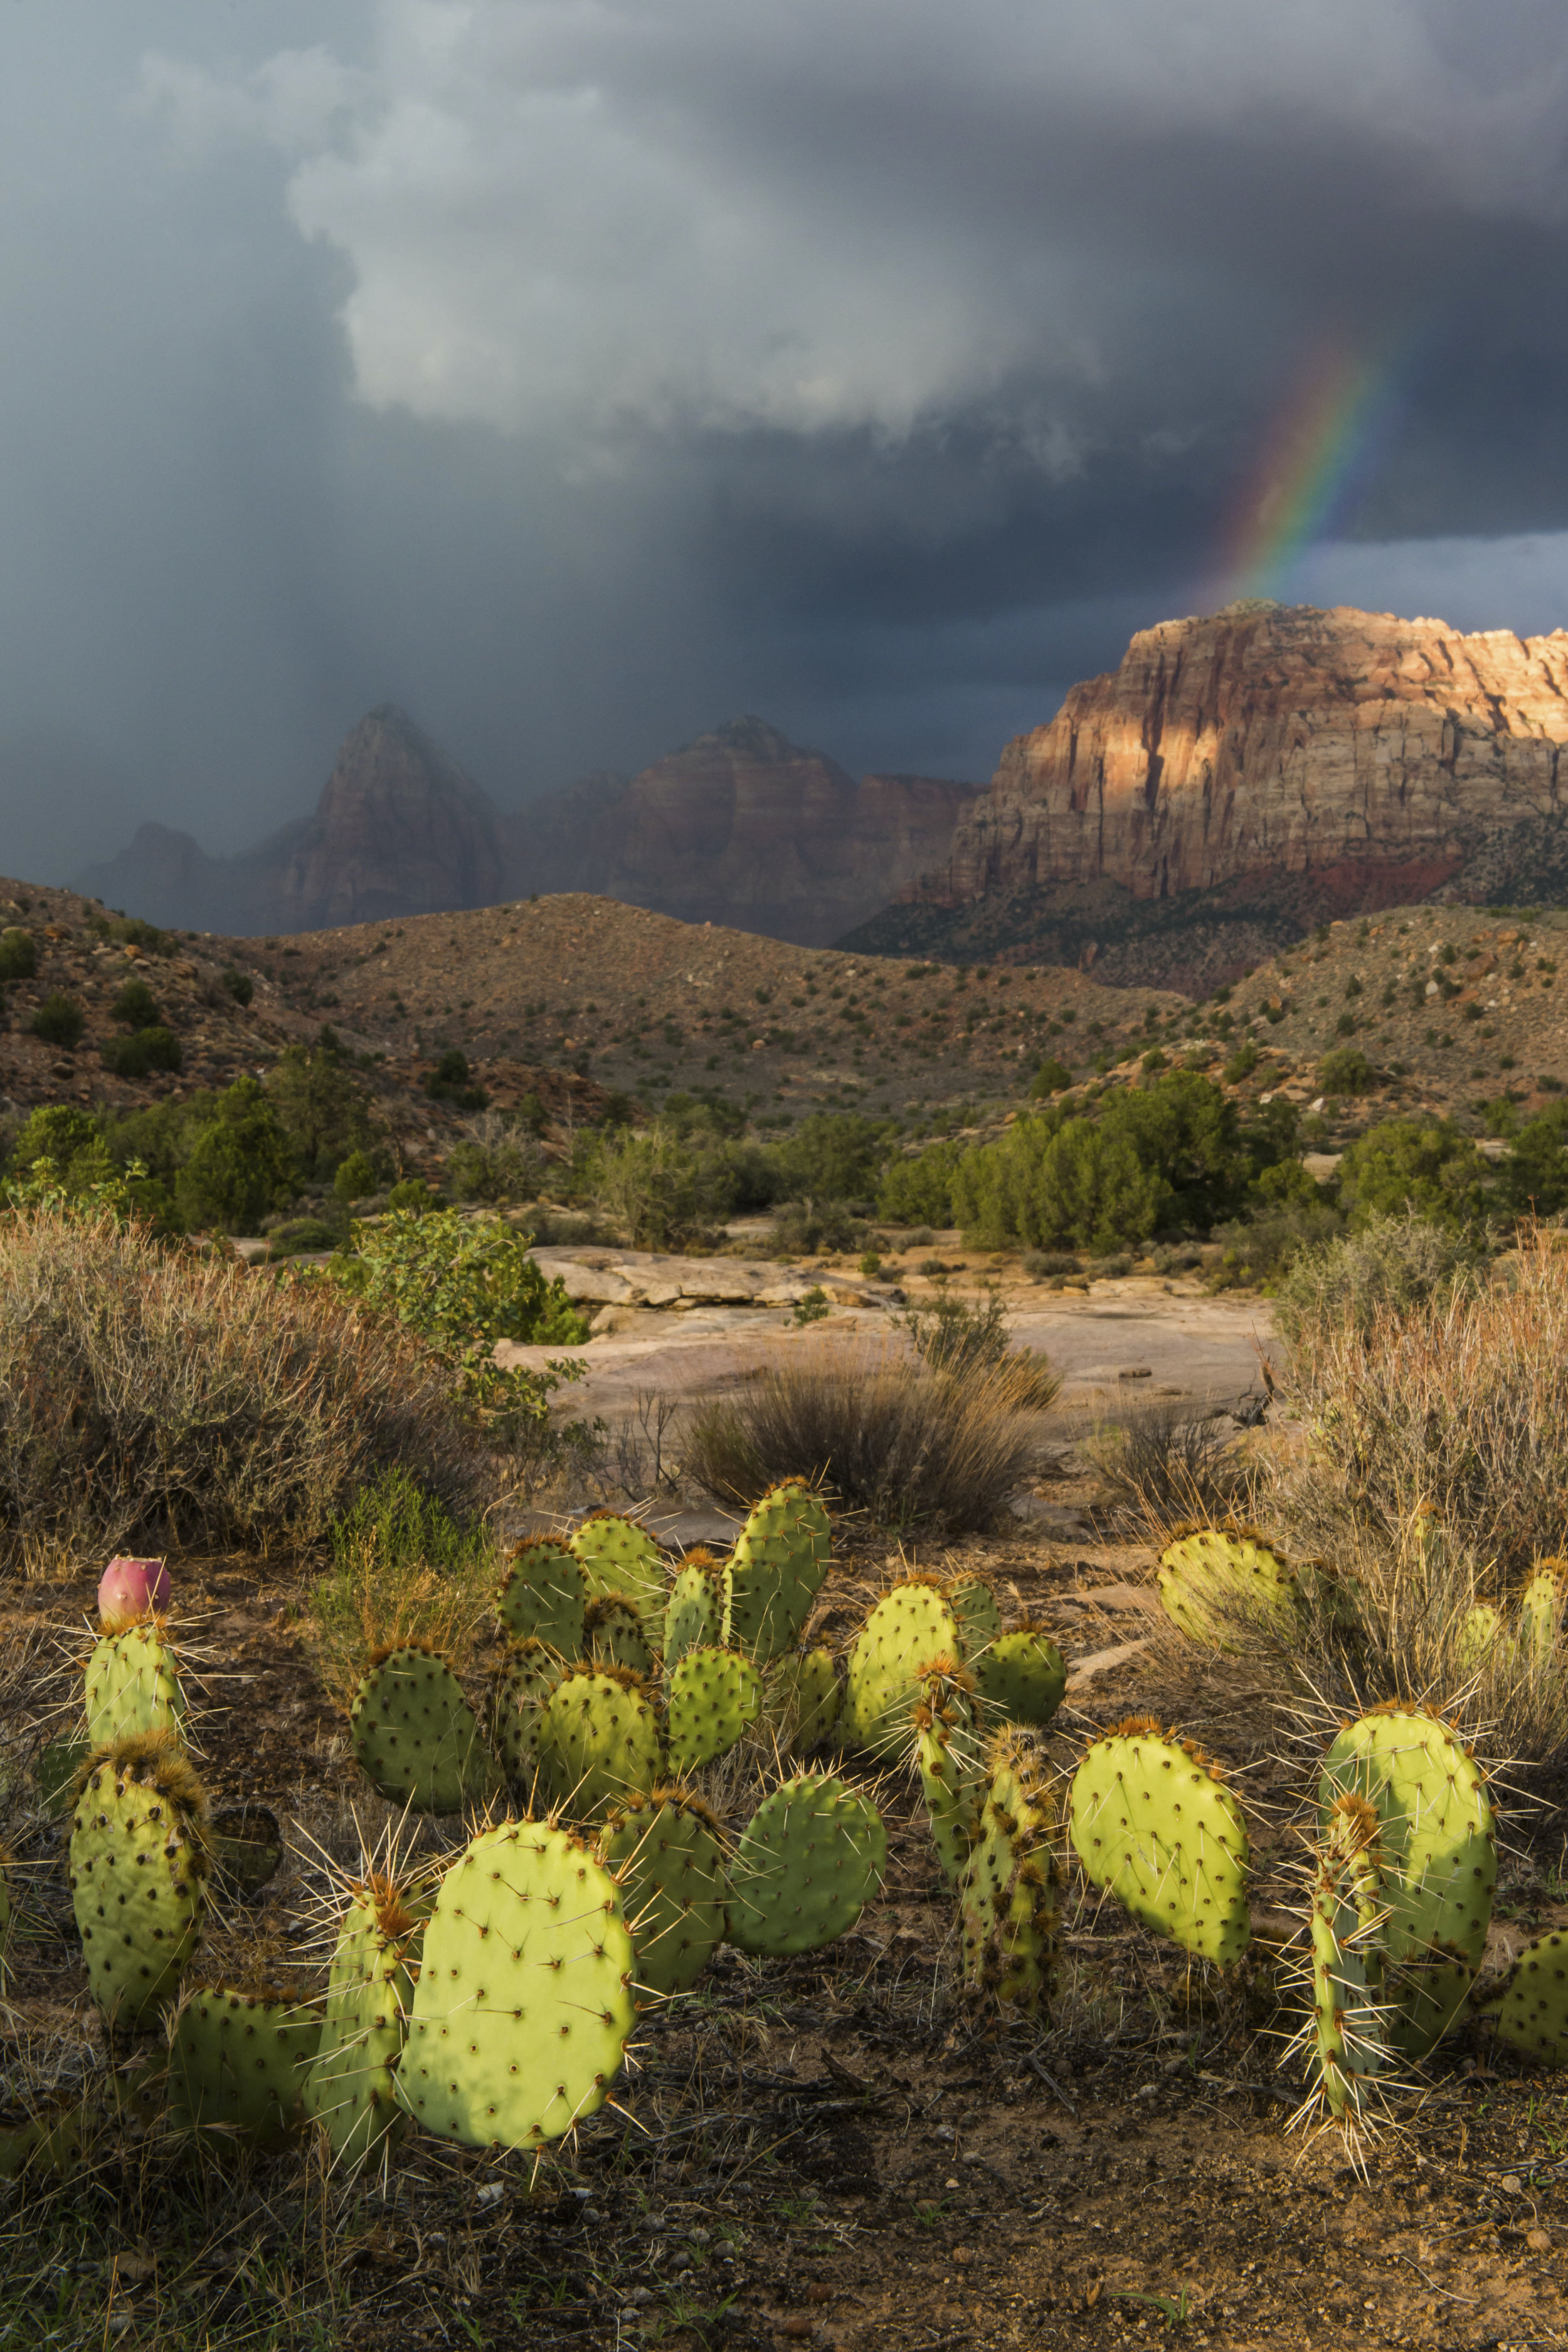 Monsoon with Zion at Sunset with Cactus Foreground